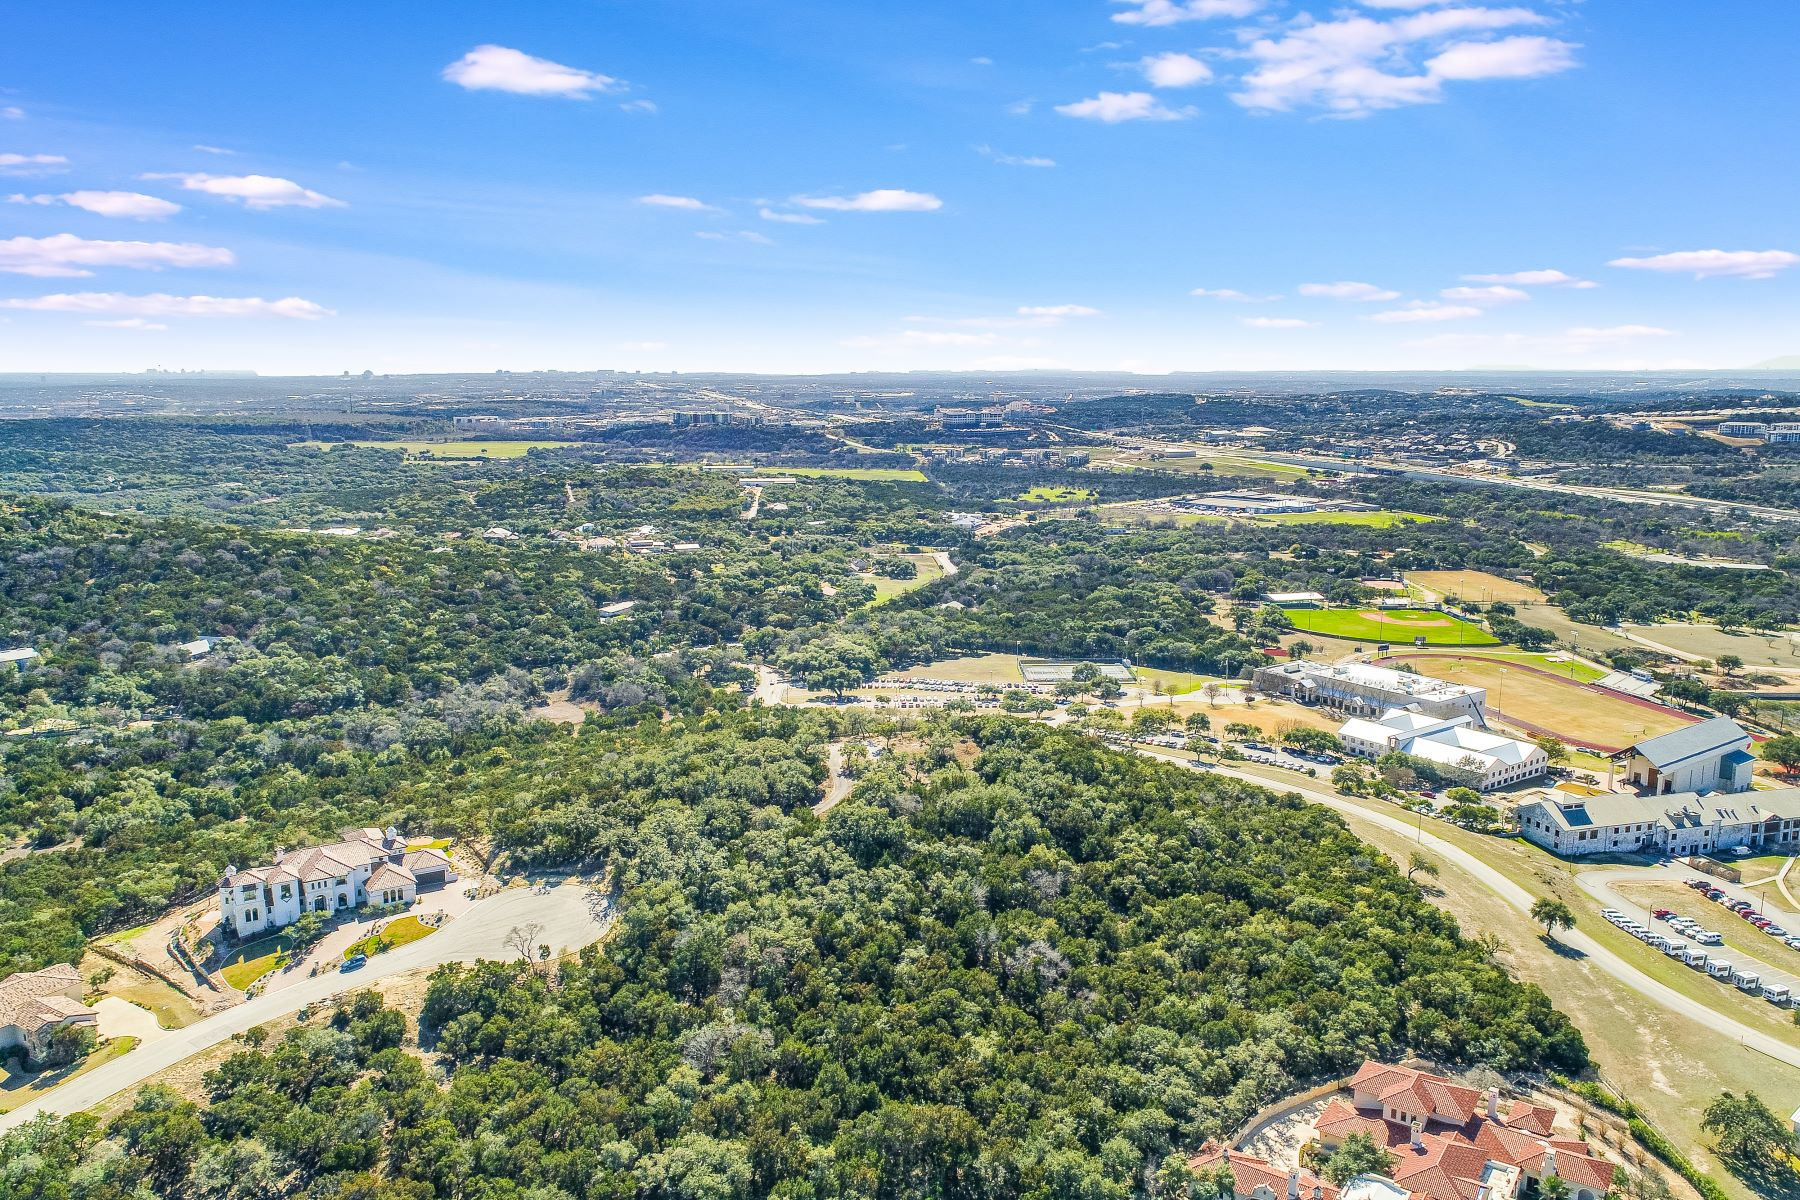 Land for Sale at Grand Dominion Lot Offering Panoramic Vistas 49 Grand Terrace, San Antonio, Texas 78257 United States